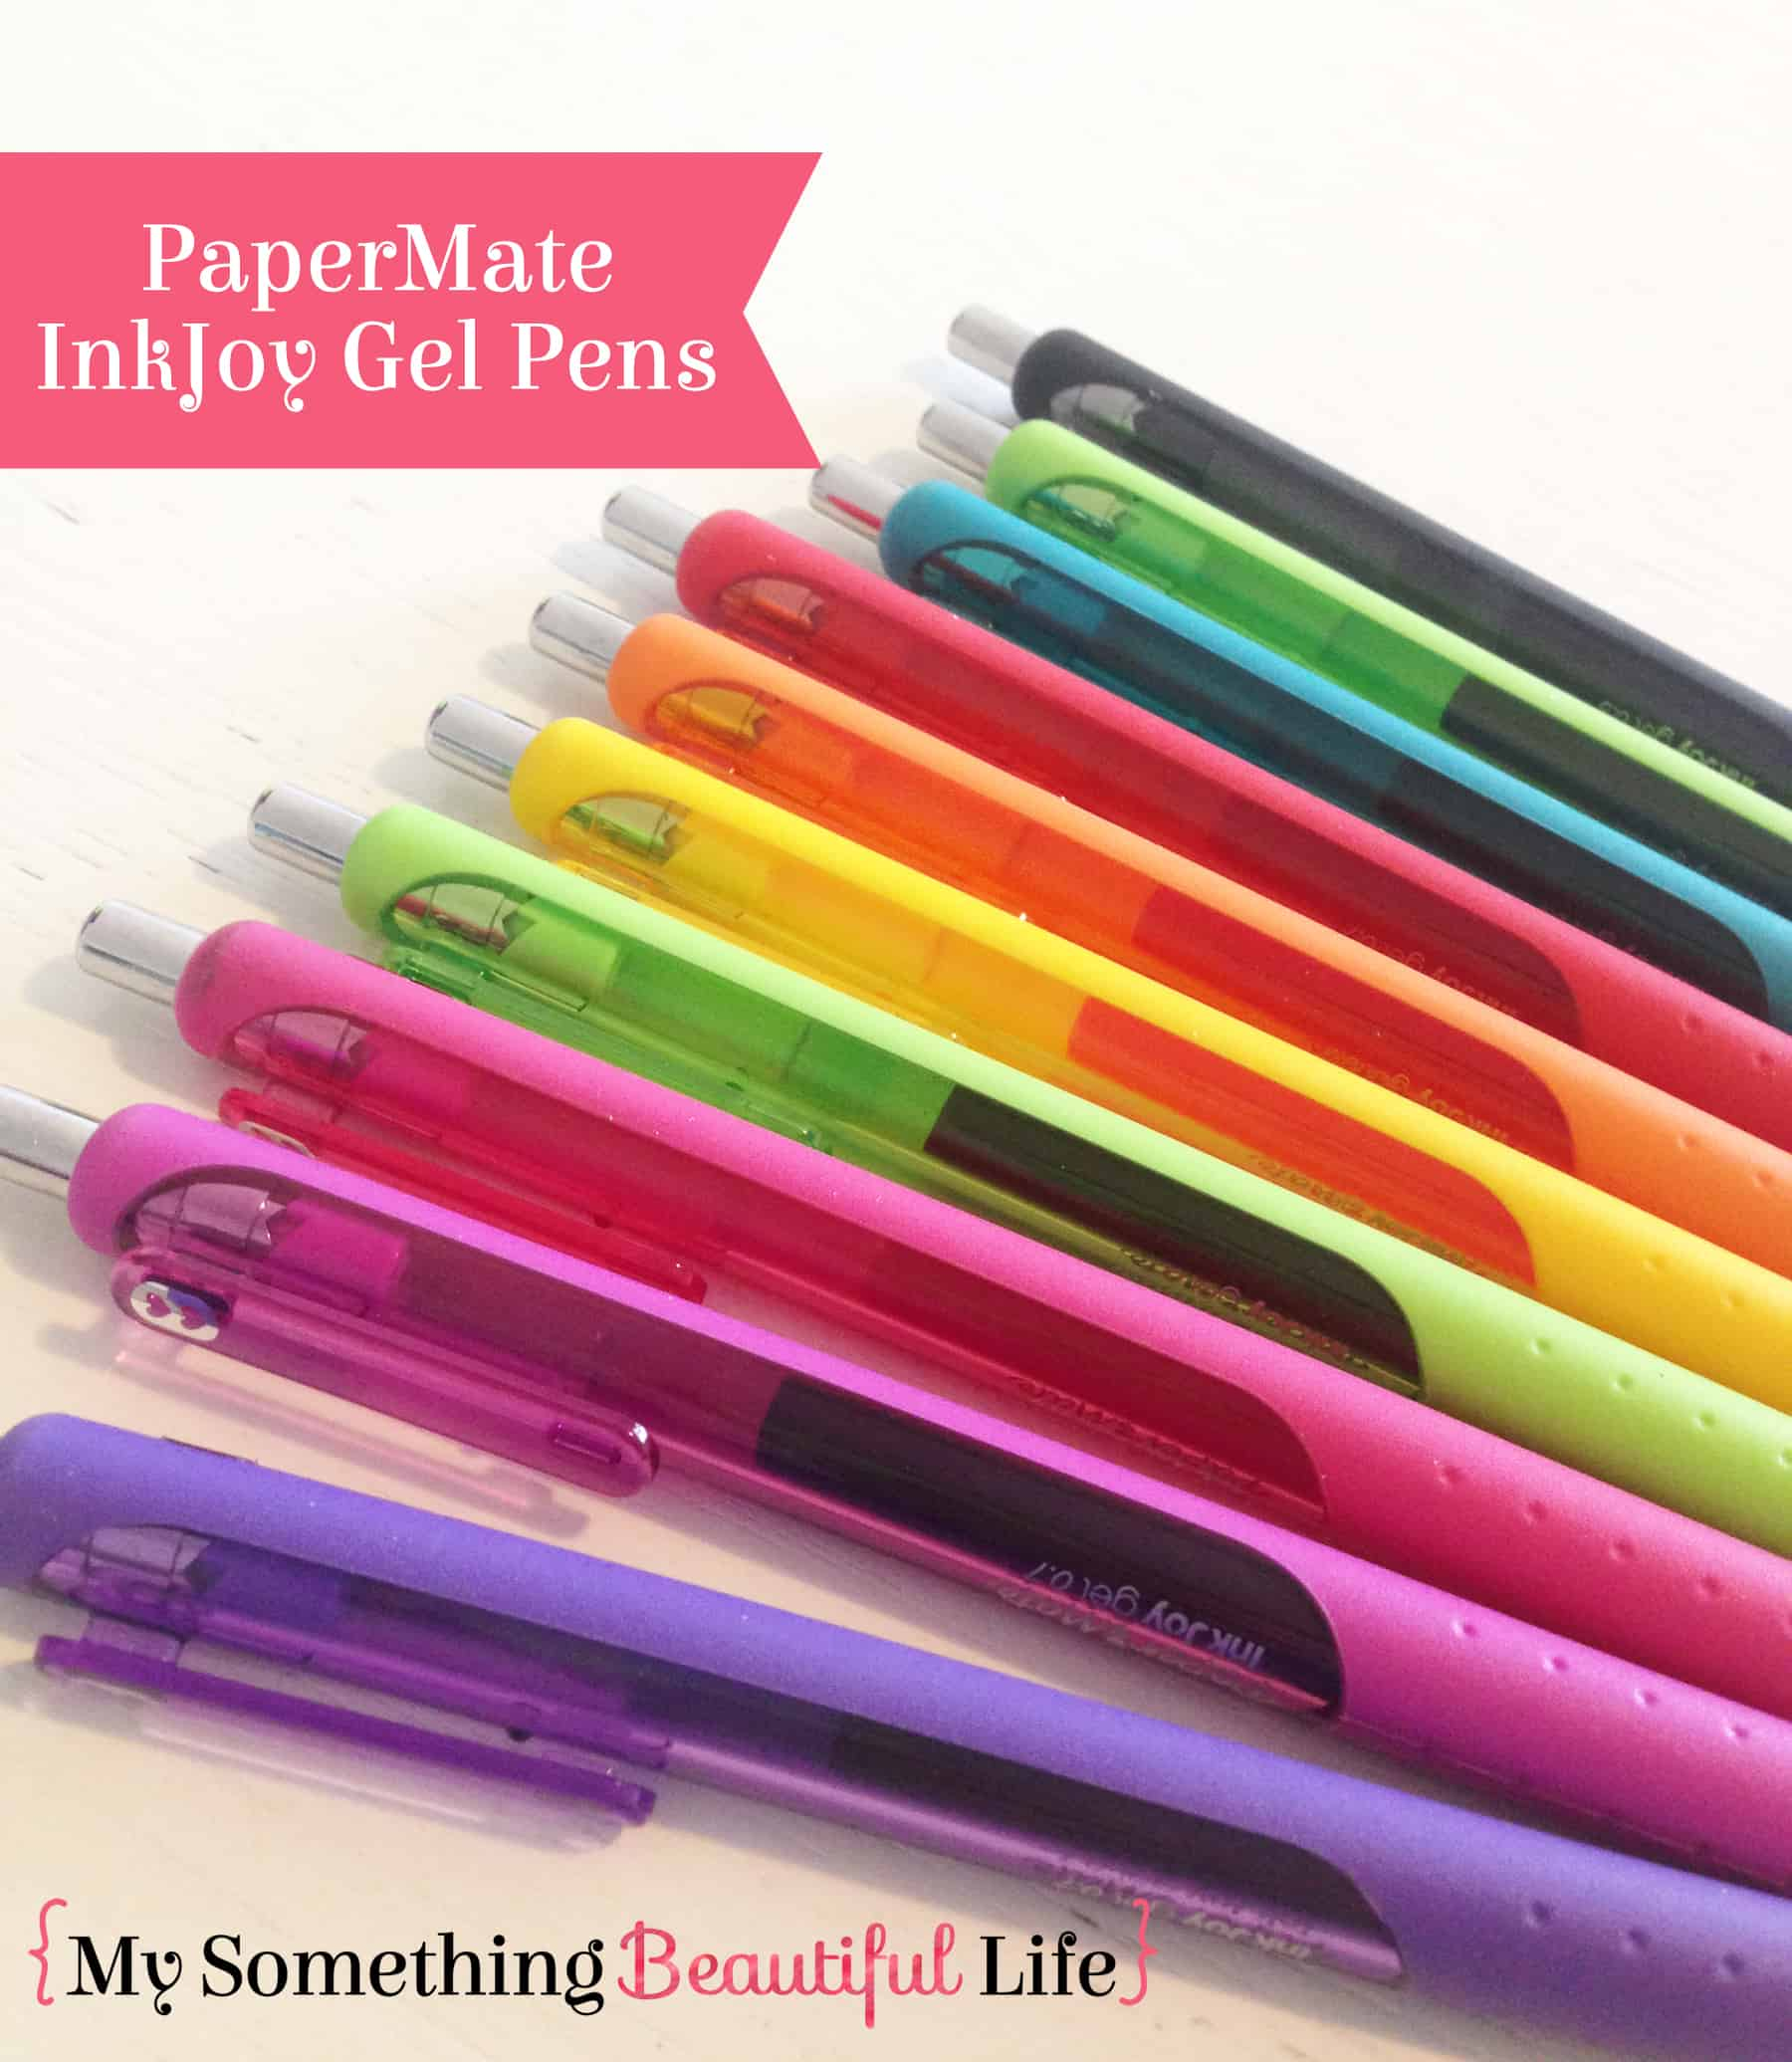 InkJoy Pens are some of the best pens for planning! #mysomethingbeautifullife